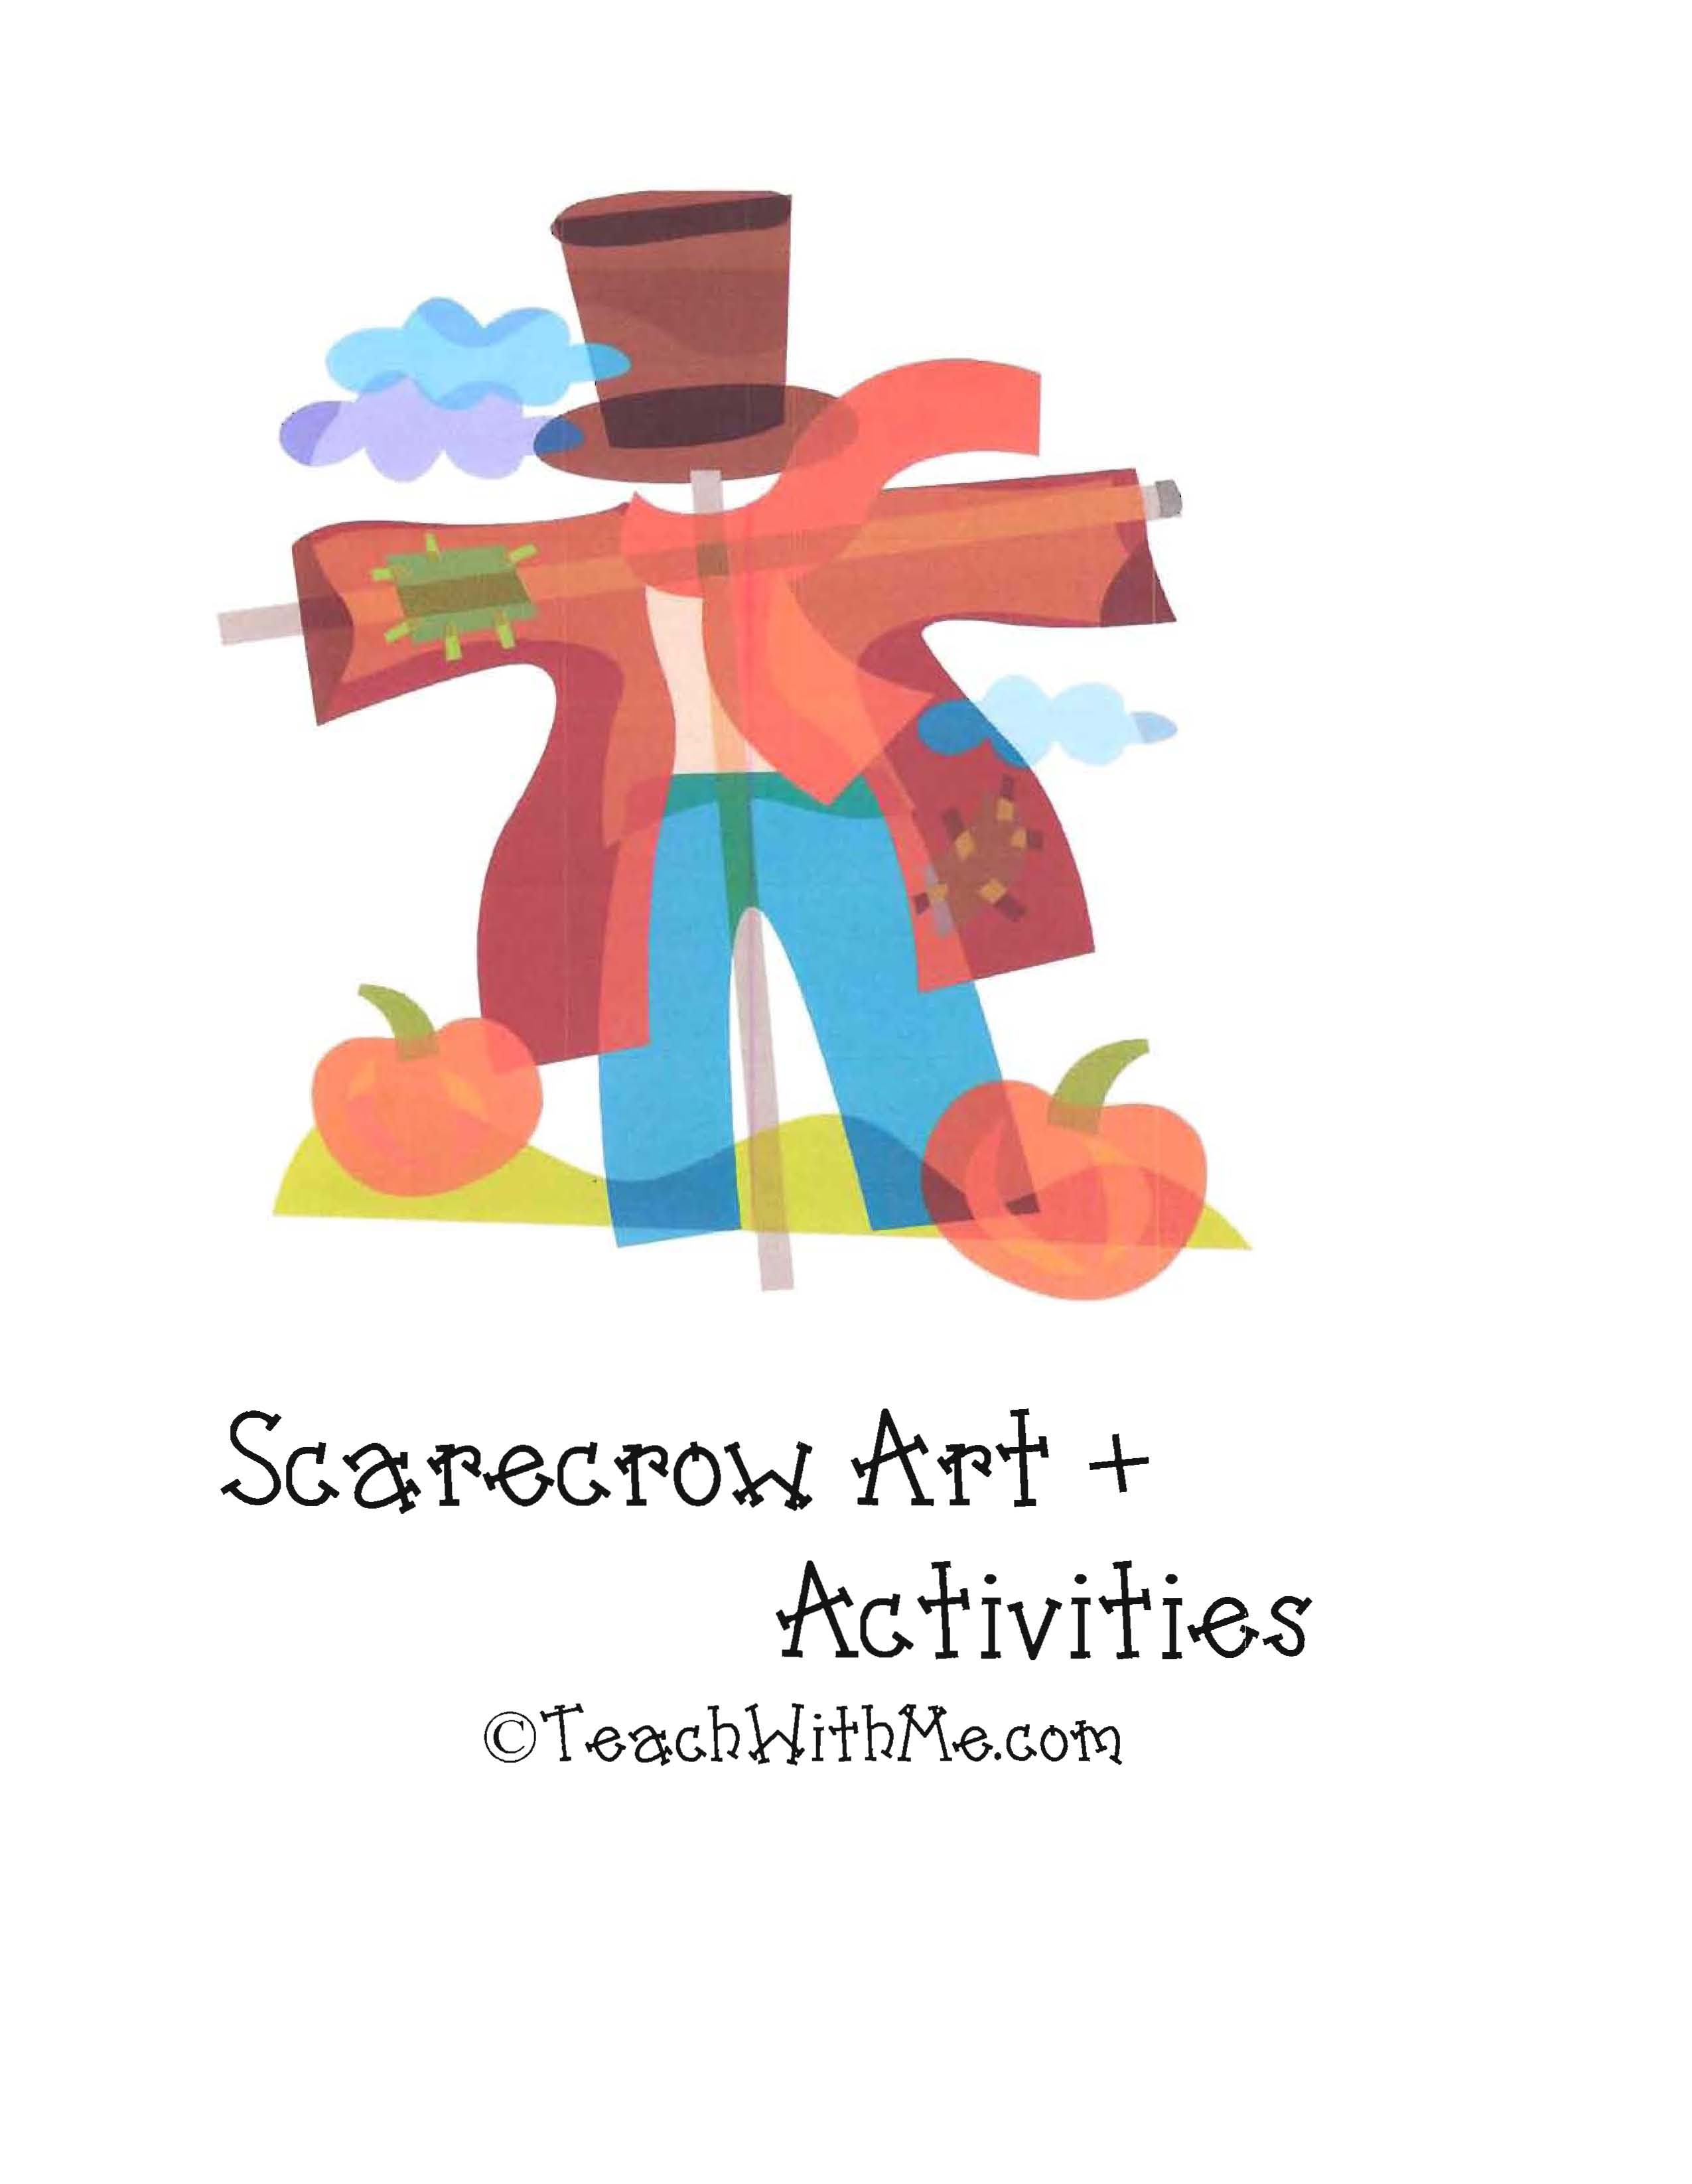 Free common core lessons, scarecrow art and activities, scarecrow lessons, scarecrow centers, scarecrow math, crow activities, crow lessons, alphabet sliders, common core lessons for kindergarten, common core lessons for 1st grade, scarecrow crafts, scarecrow art projects, scarecrow poems, shape activities, shape lessons, november bulletin boards, fall bulletin boards, scarecrow bulletin boards, november bulletin board ideas,